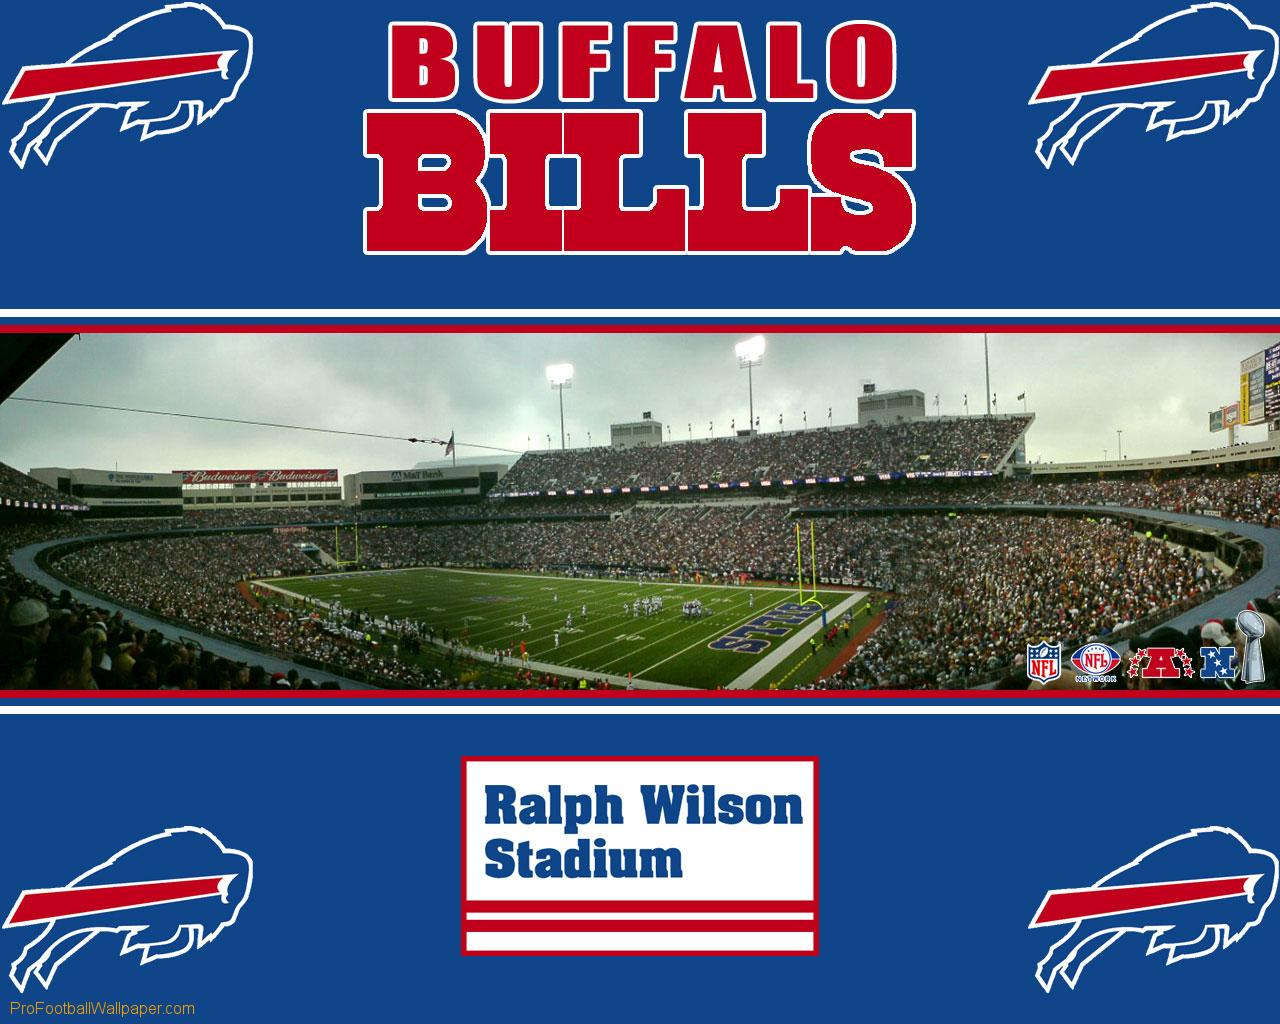 Download Buffalo Bills wallpaper Buffalo Bills 1280x1024